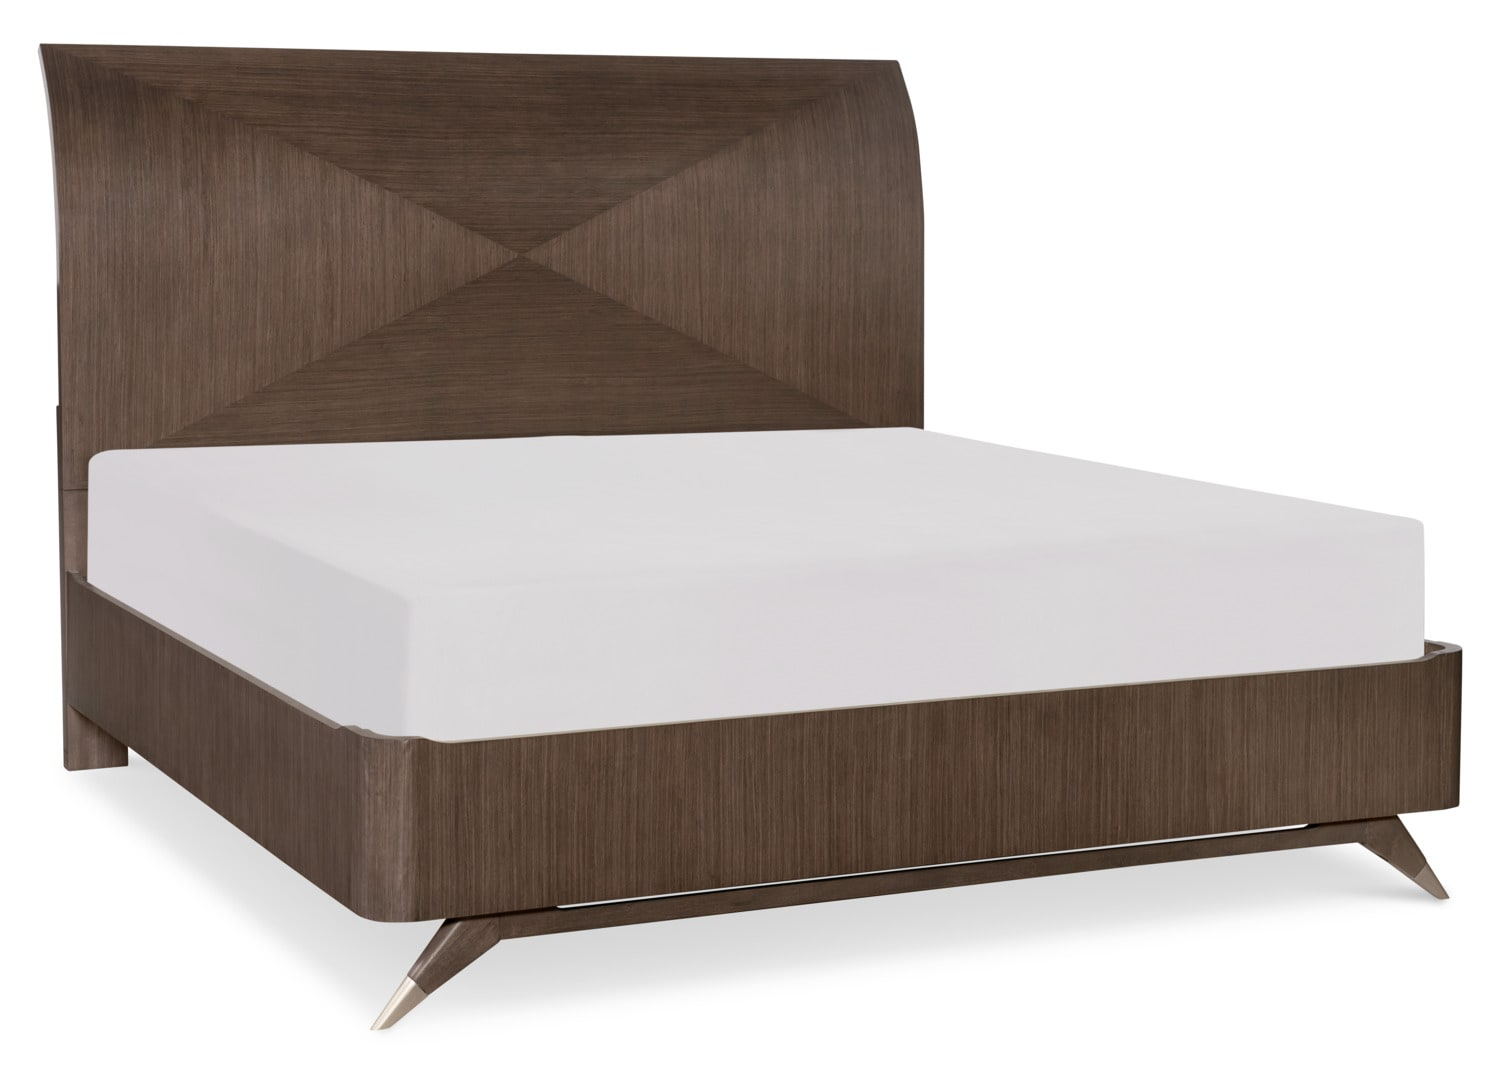 Rachael Ray Queen Bed - Ash Brown